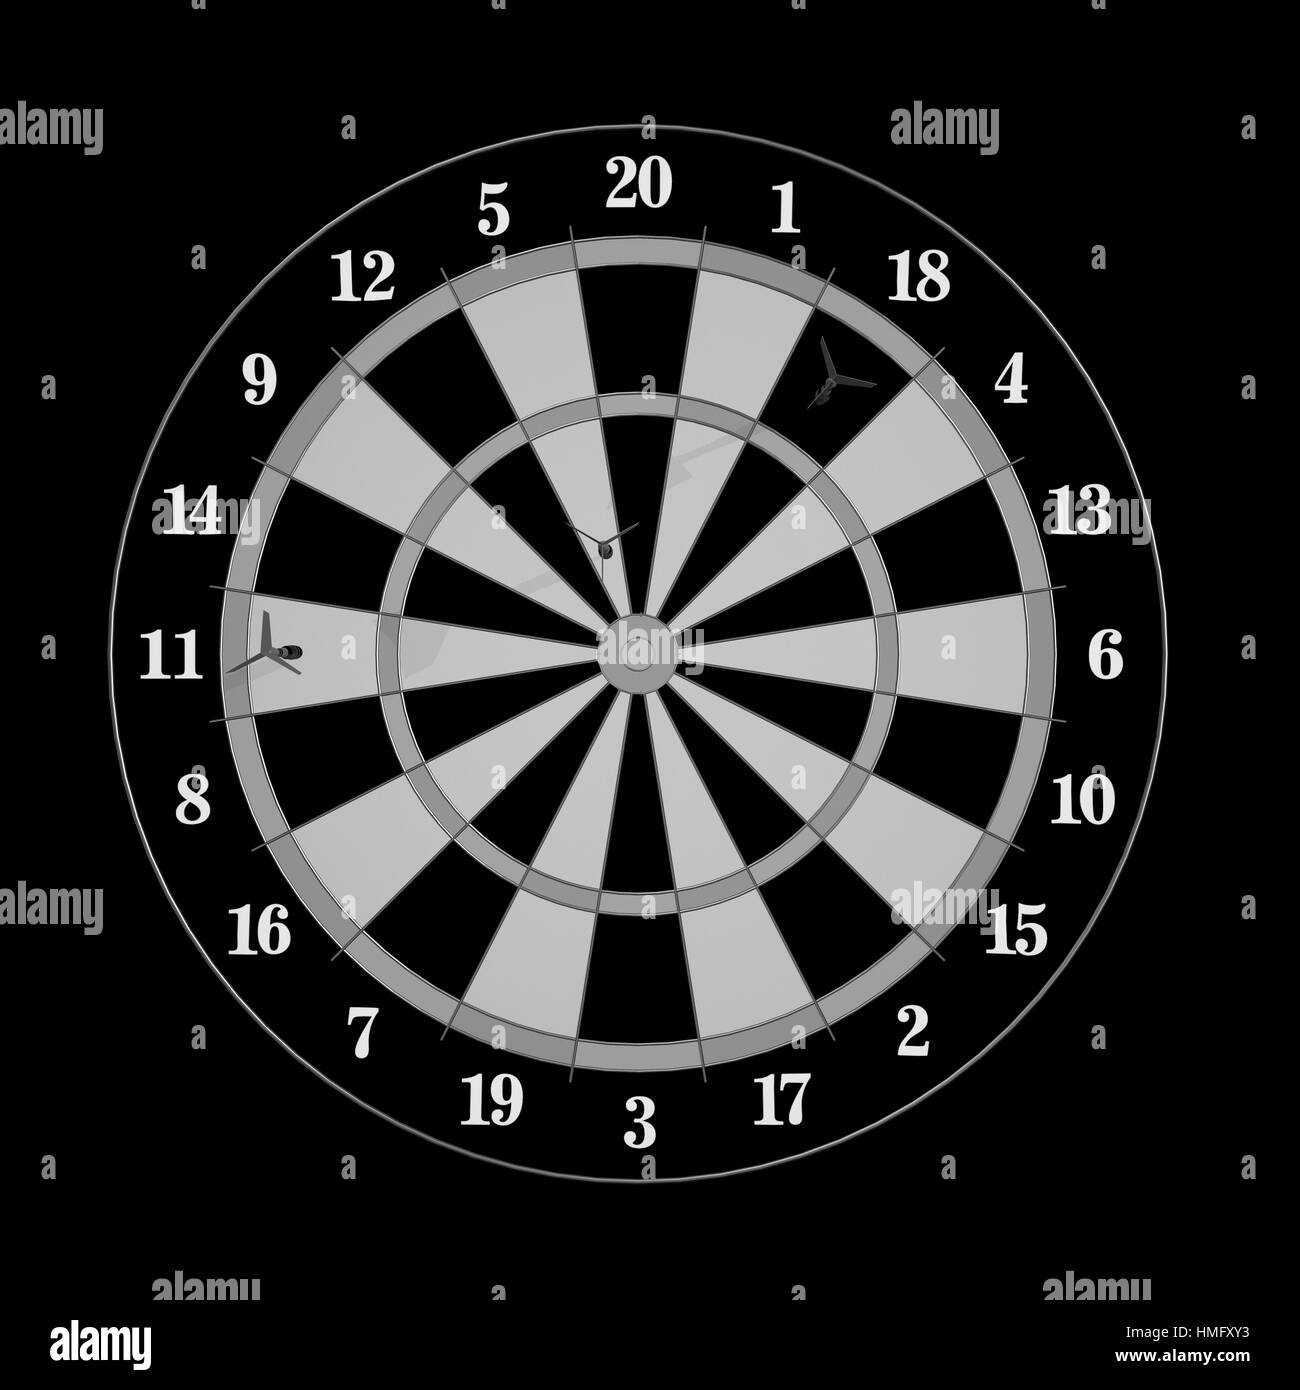 Darts and arrows 3d illustration on black - Stock Image